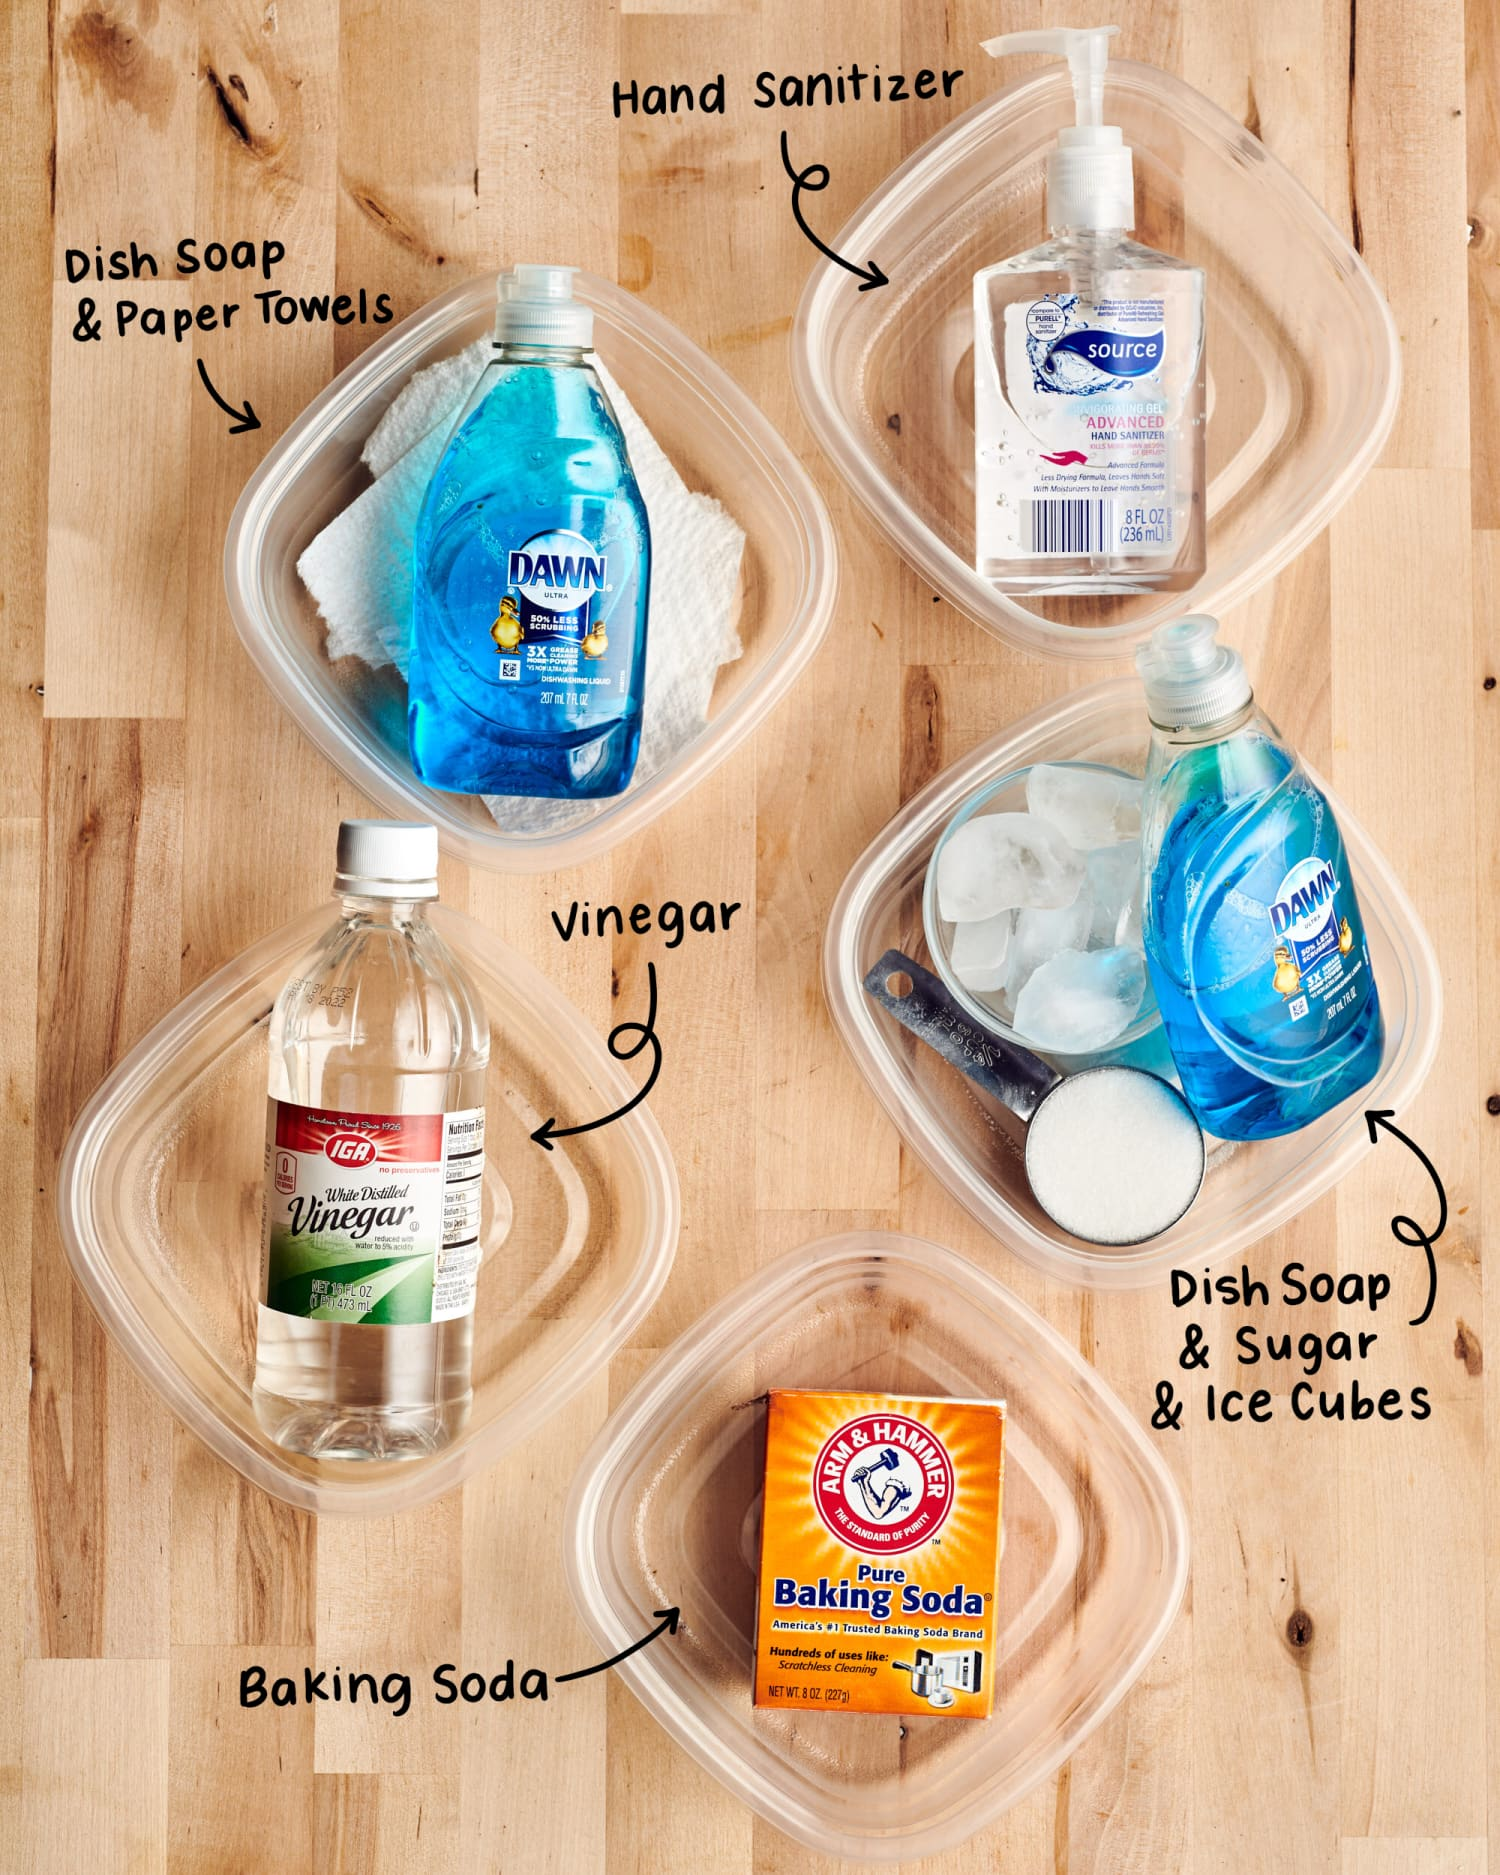 We Tried 5 Methods for Cleaning Stained Plastic Containers